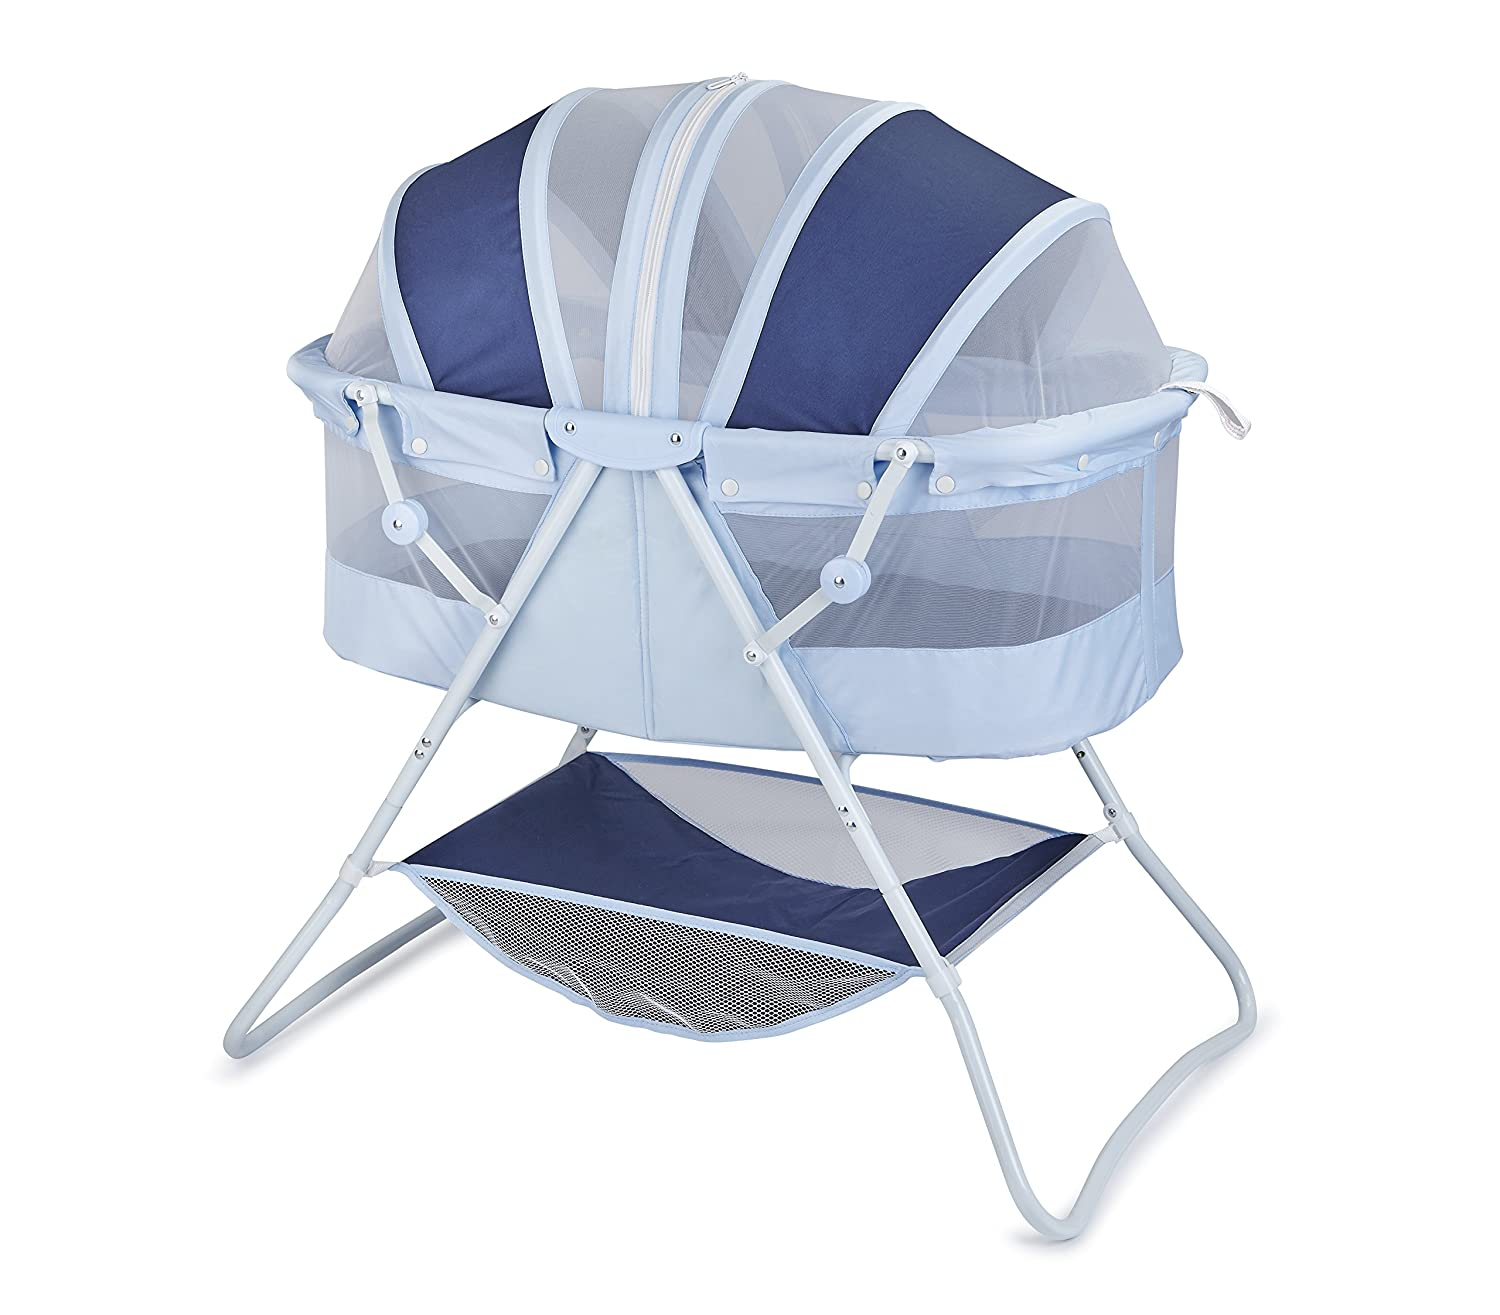 Big Oshi Emma Newborn Baby Bassinet – Portable Bassinet for Boys or Girls – Perfect for Bedside, Indoors, or Outdoors – Lightweight for Travel – Canopy Netting Cover – Wood Bed Base, Navy